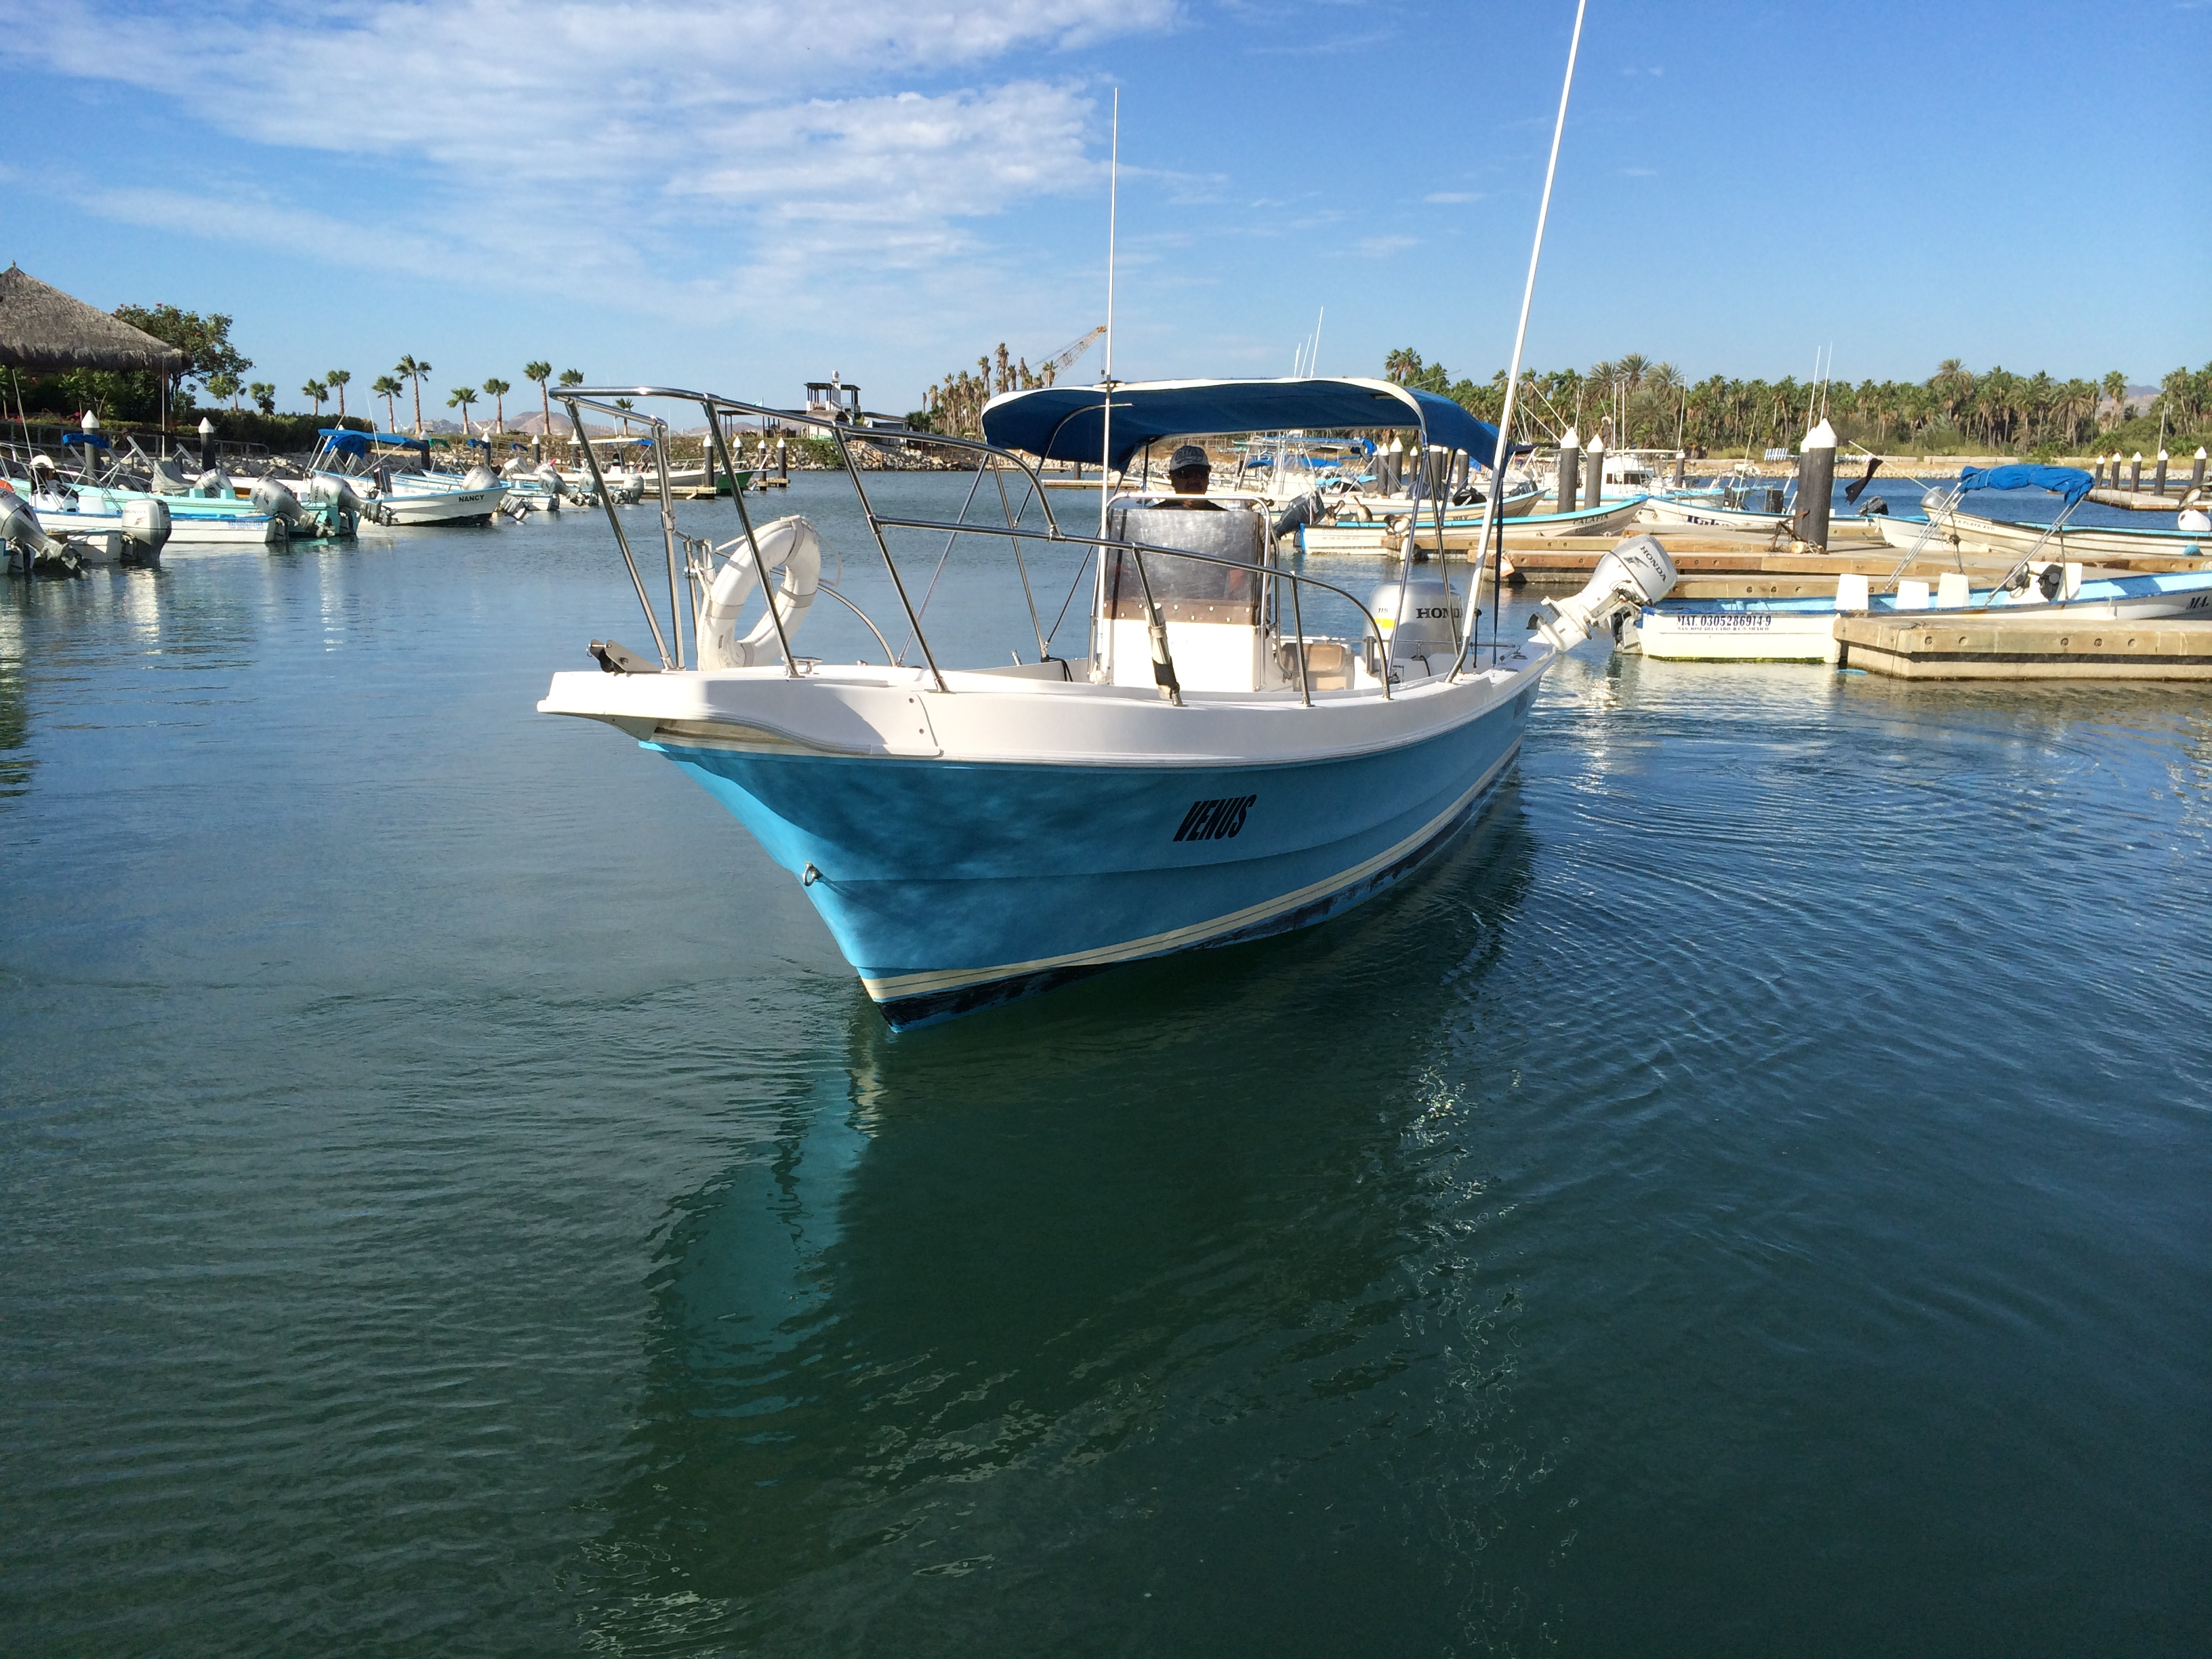 Gallery fishing tours san jose del cabo boat charters for San jose del cabo fishing charters